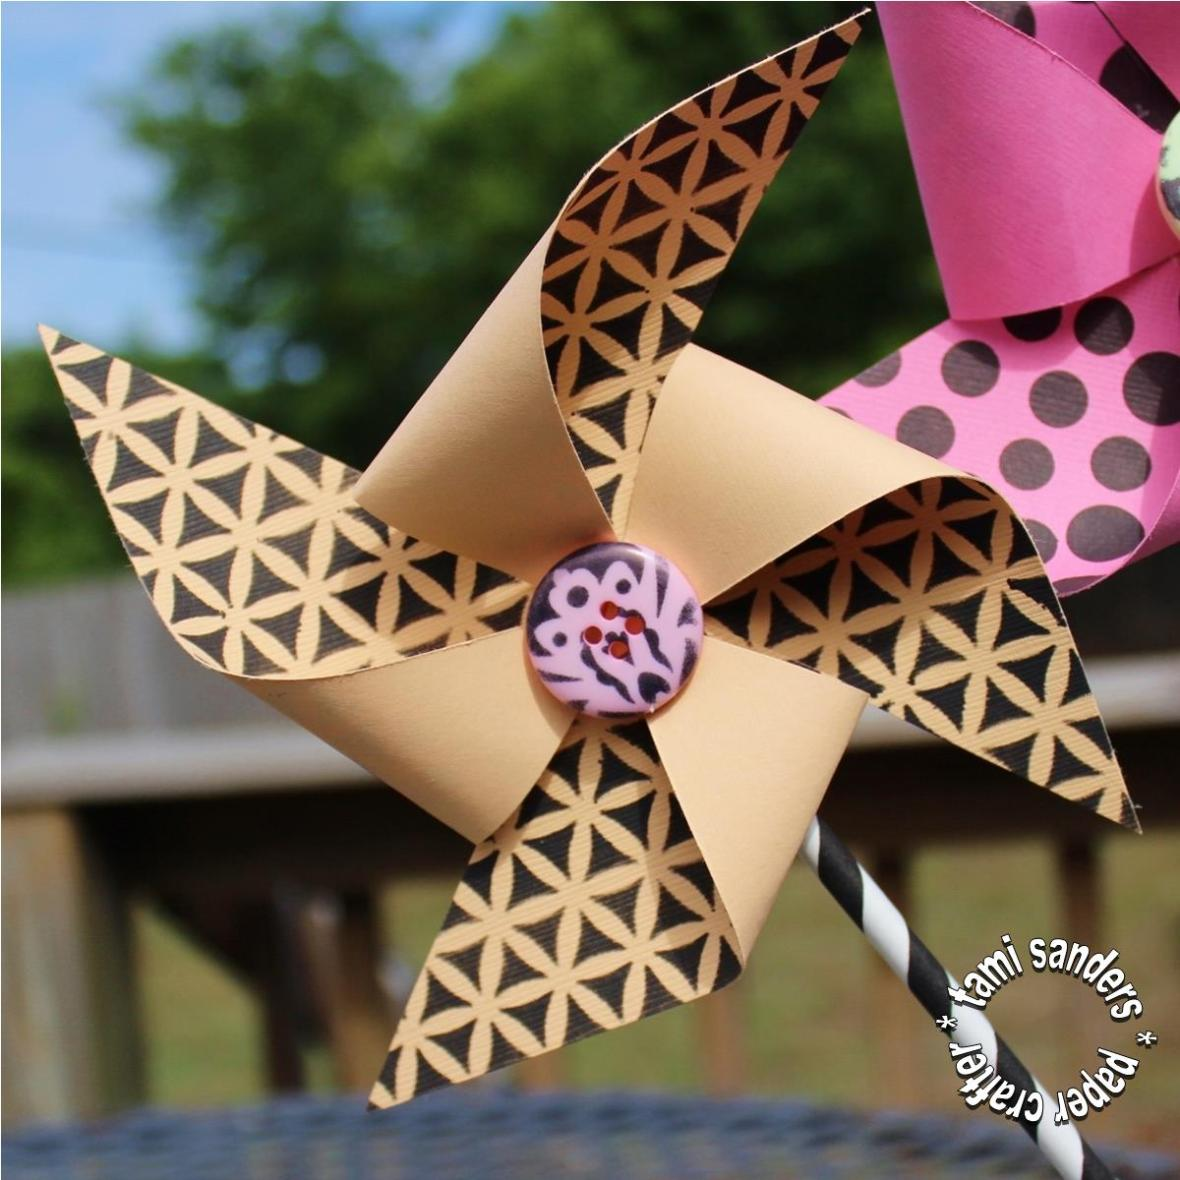 pinwheels -2- tcw,the crafter's workshop, kids party decor,kids party favors, birthday party,girls decor,making pinwheels,tami sanders - shwm